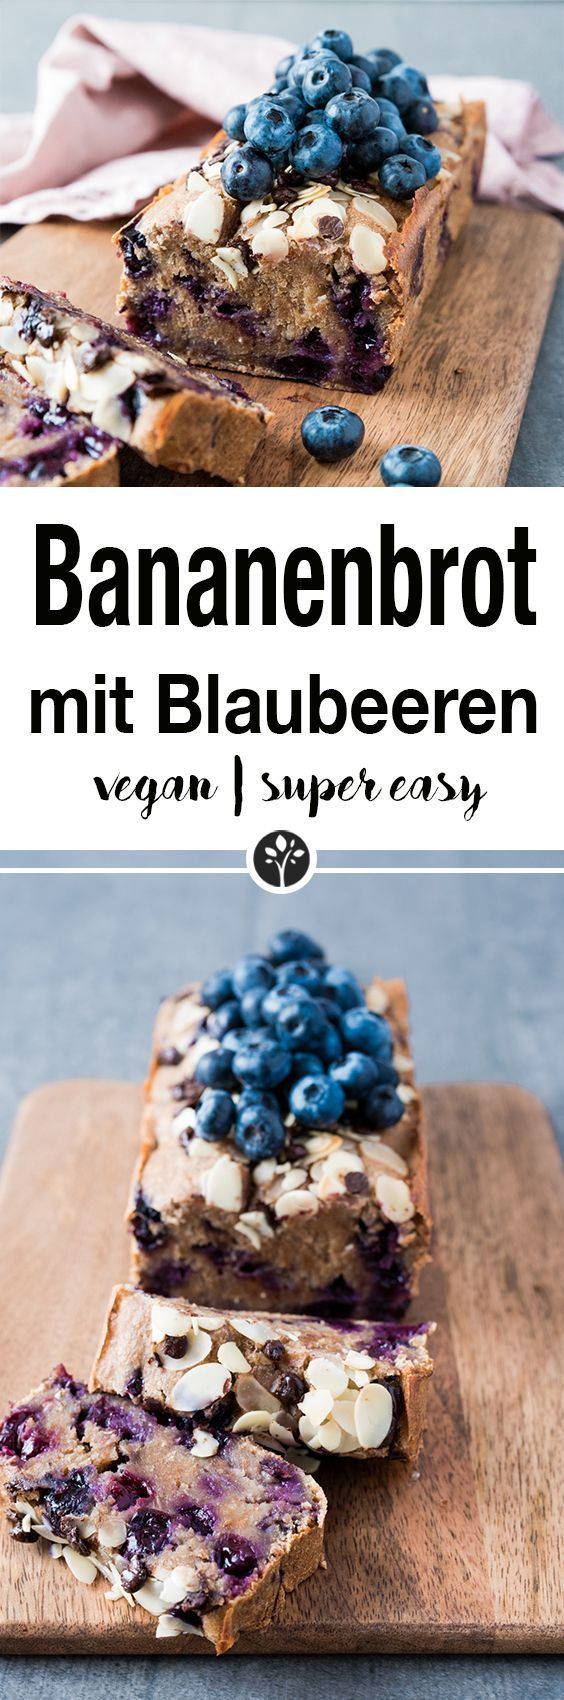 Photo of Bananenbrot mit Blaubeeren | NataschaKimberly